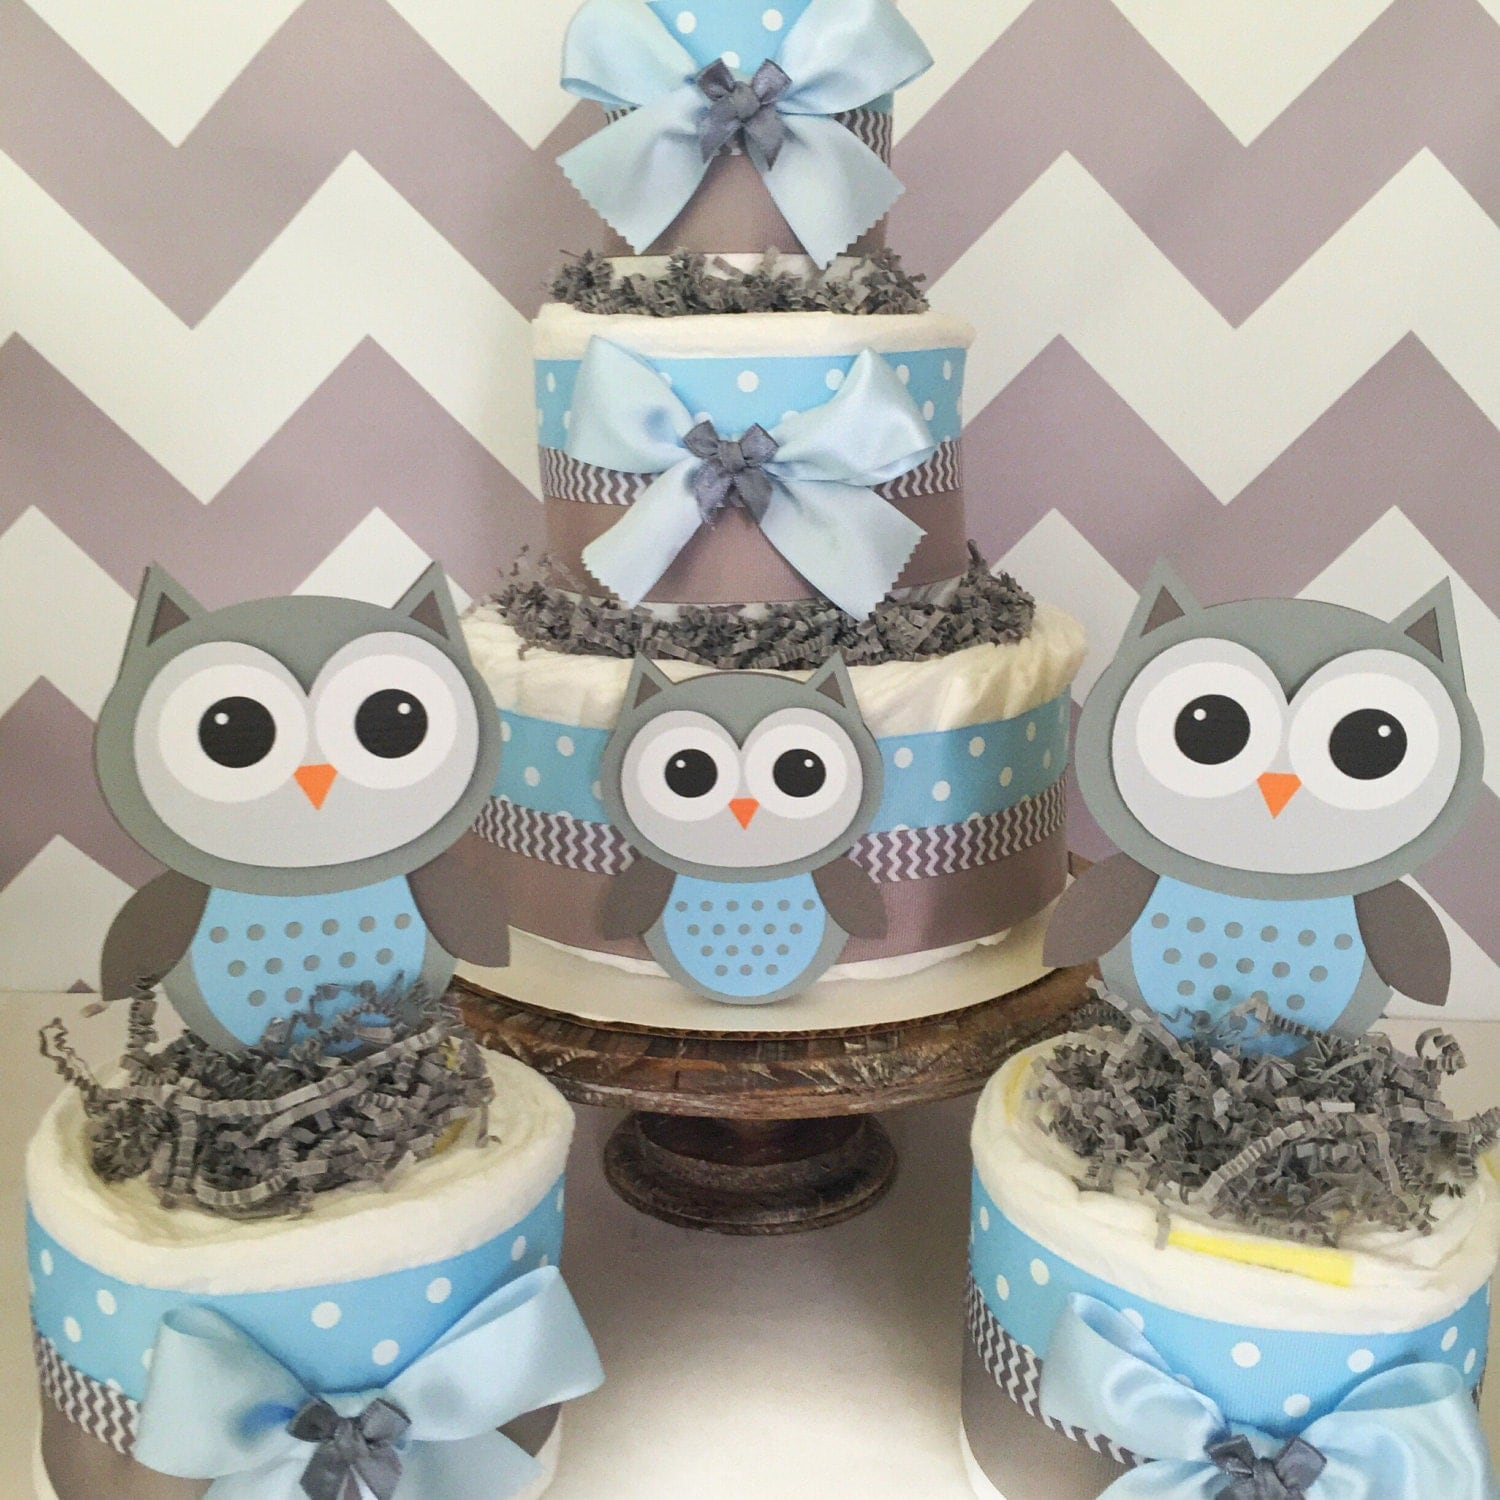 Owl Baby Shower Supplies: Set Of 3 Owl Diaper Cake Centerpieces In Blue And Gray